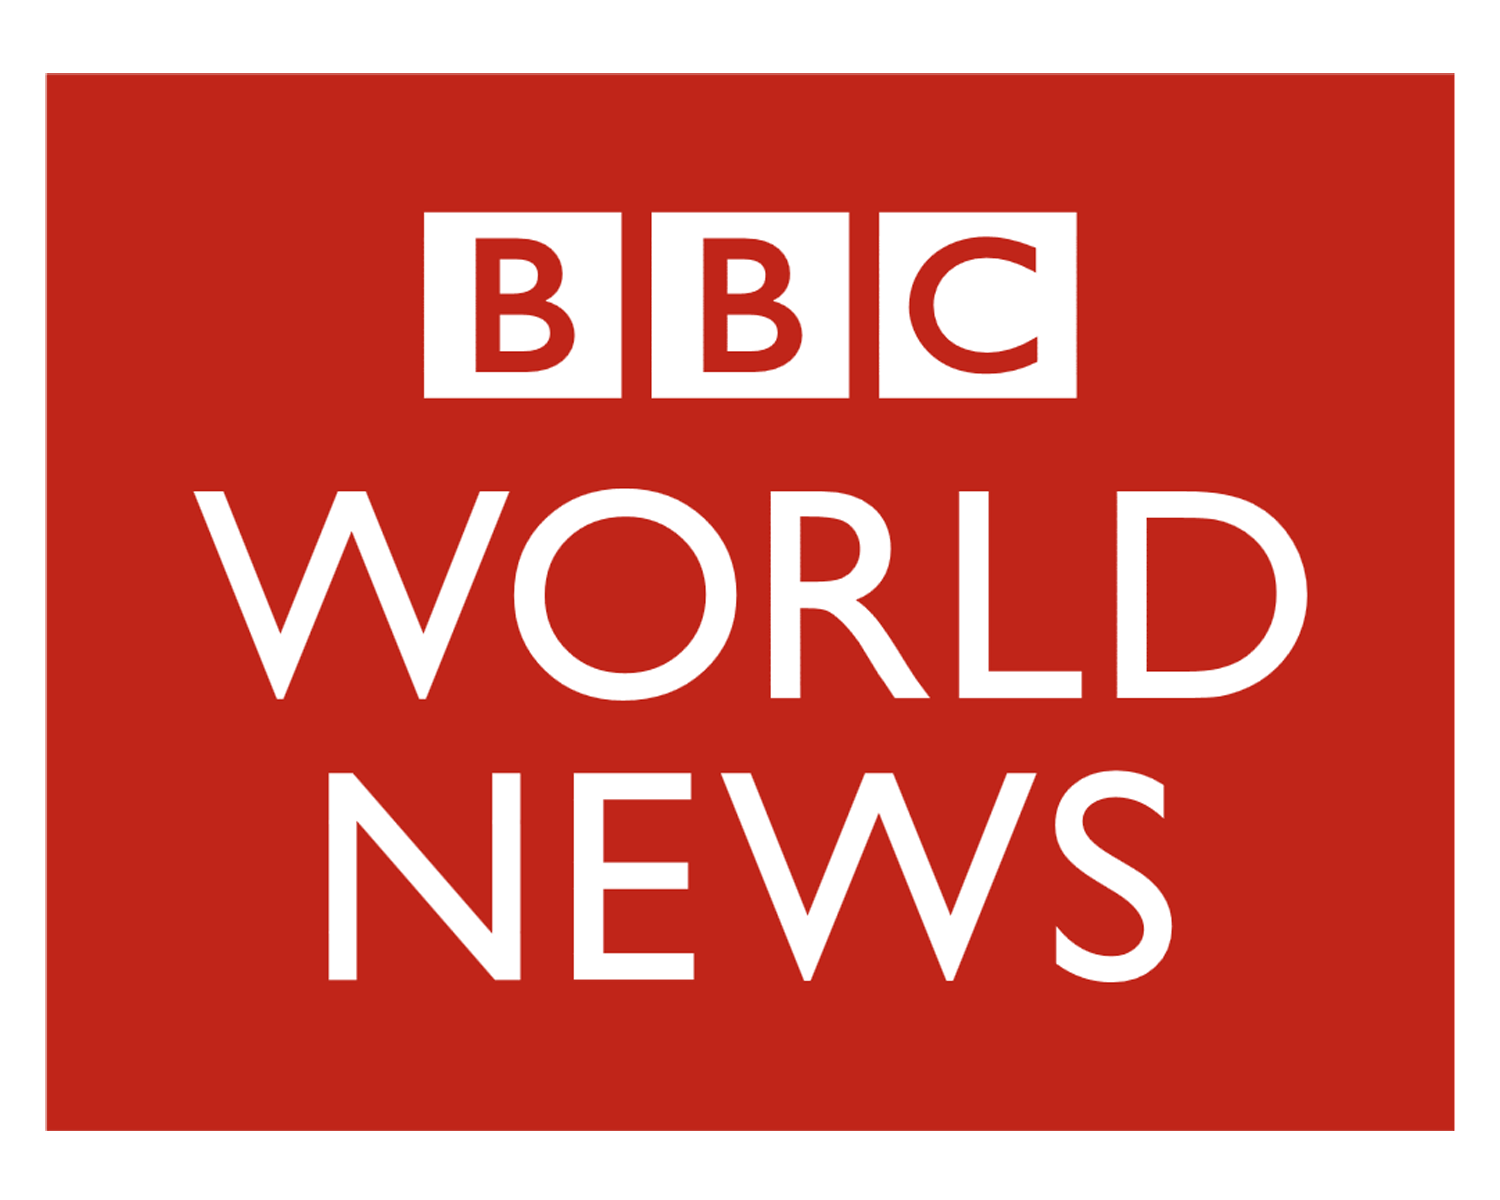 Interview with BBC World News to discuss the IV normal saline shortage